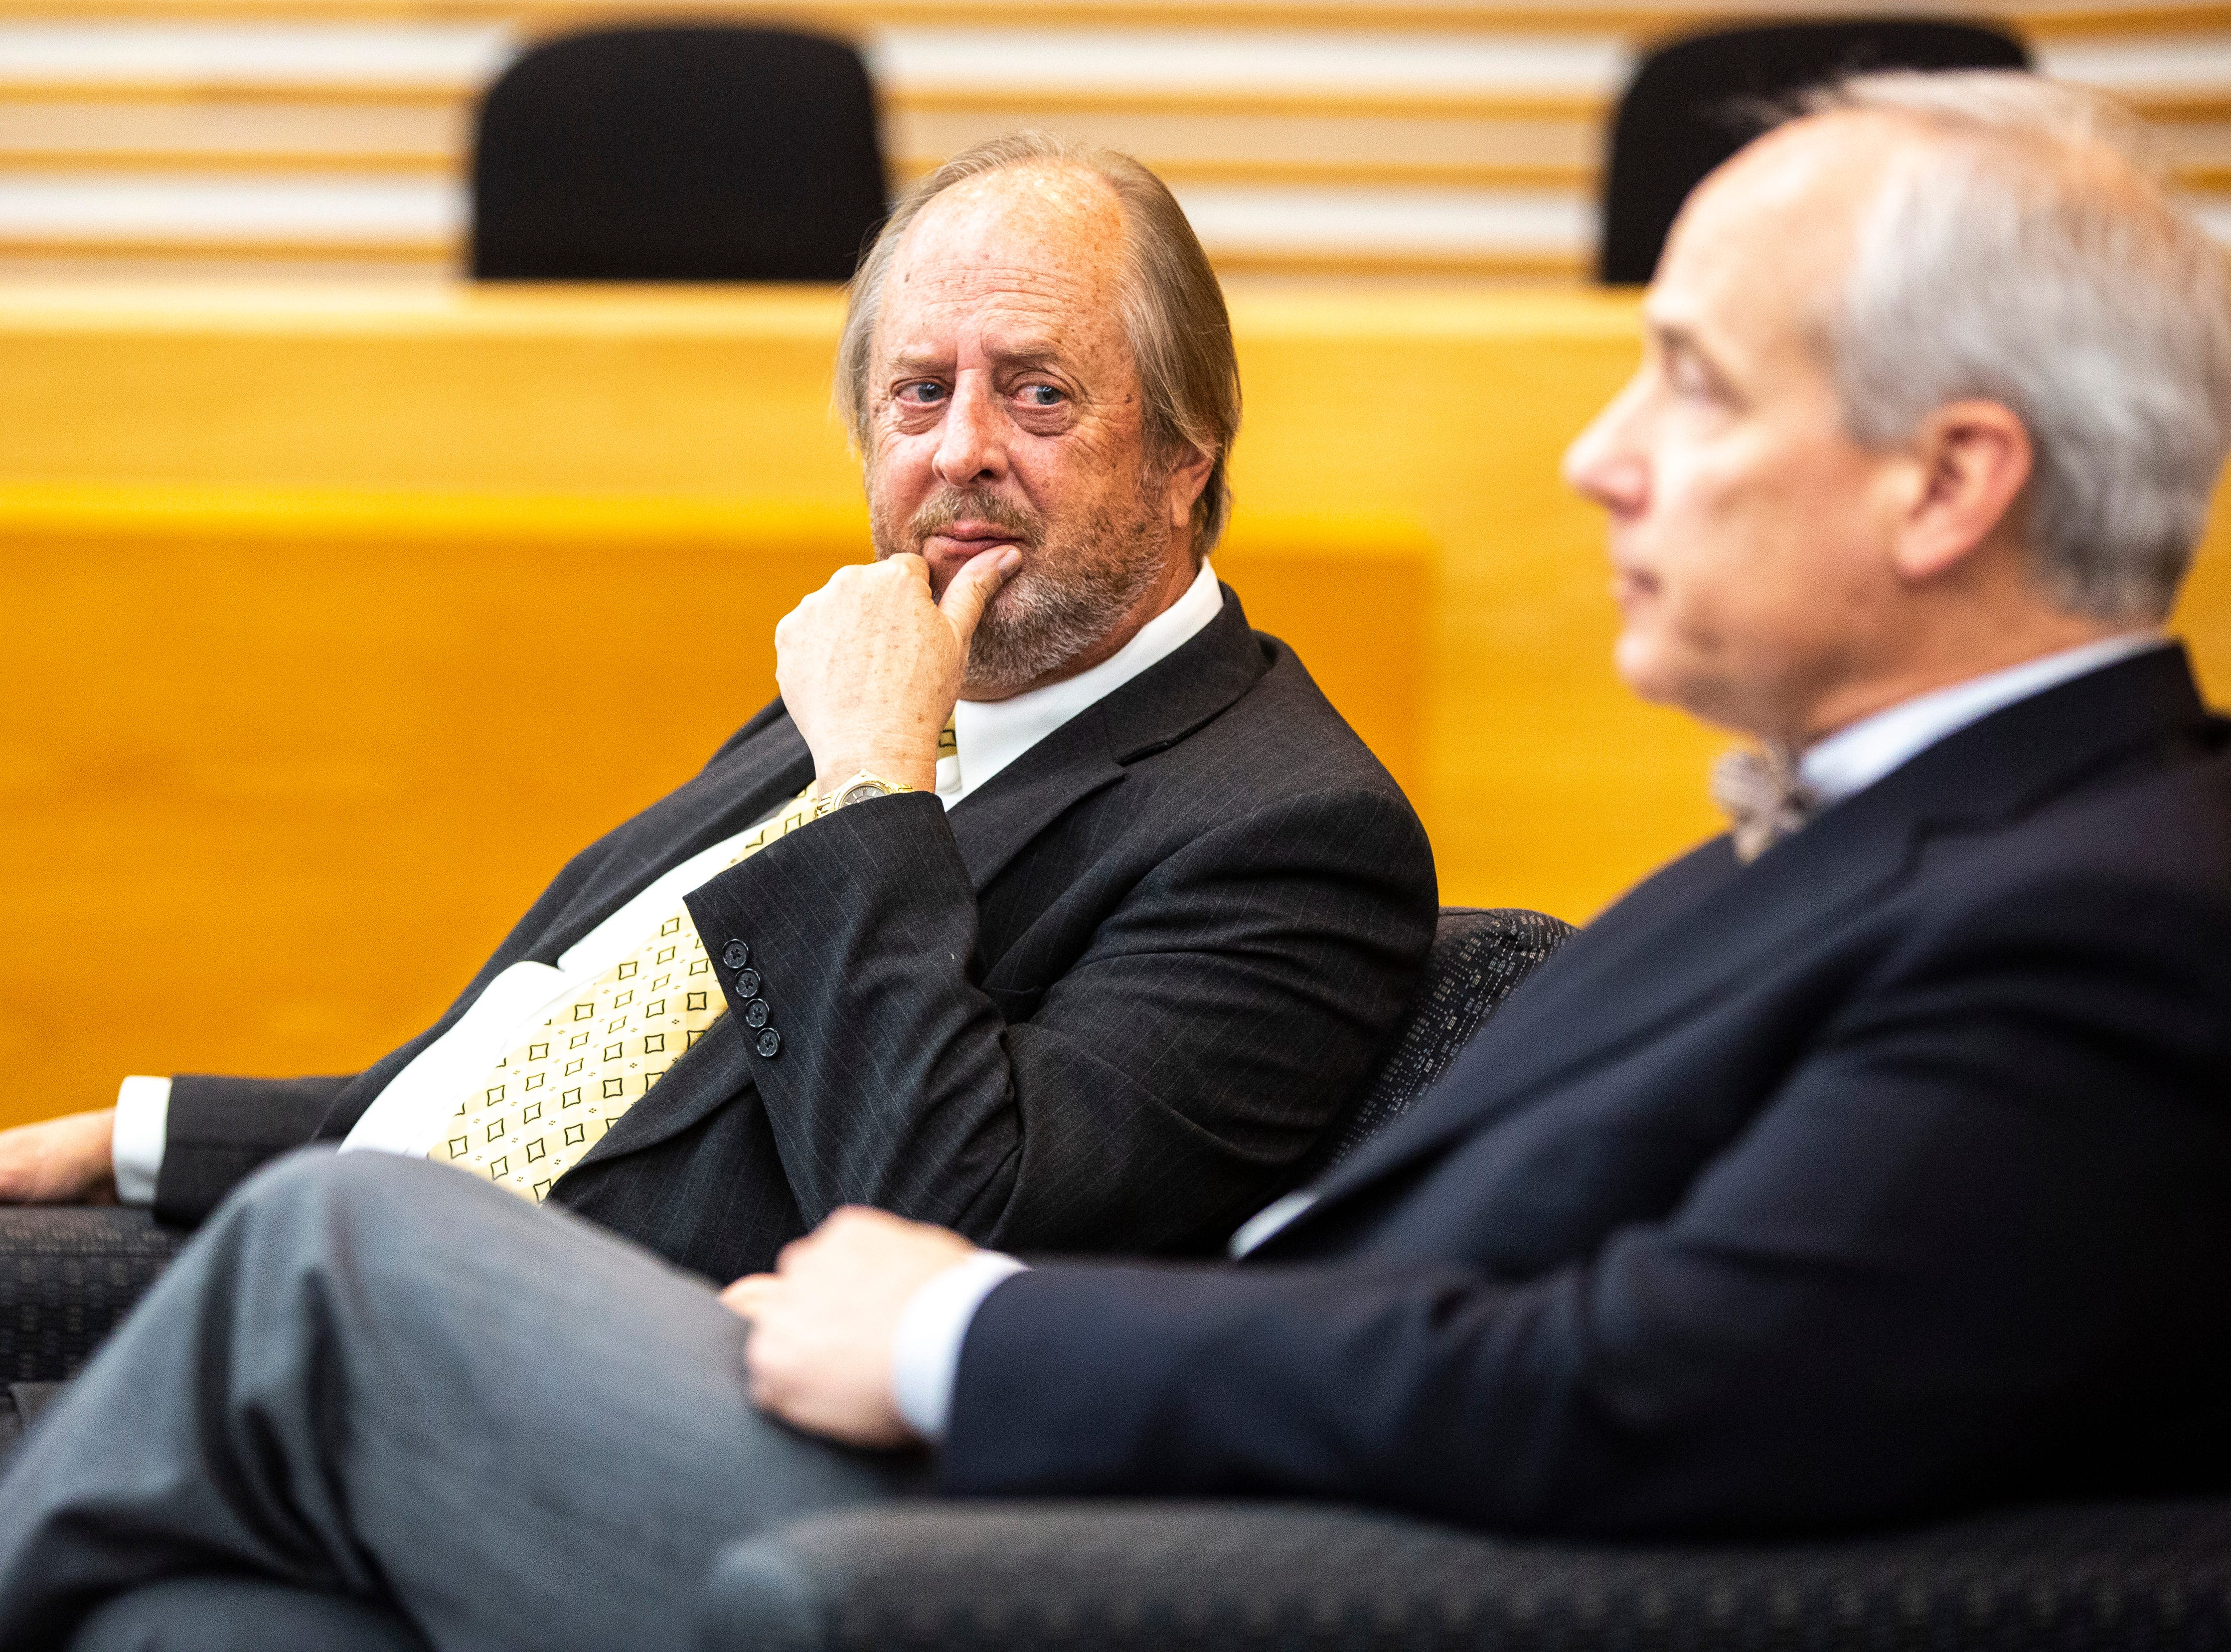 Former Iowa Supreme Court Justice David L. Baker, left, listens during a panel regarding the Varnum v. Brien Iowa Supreme Court decision with District 5 Judge Robert B. Hanson, Thursday, April 18, 2019, in the Boyd Law Building on the University of Iowa campus in Iowa City, Iowa.